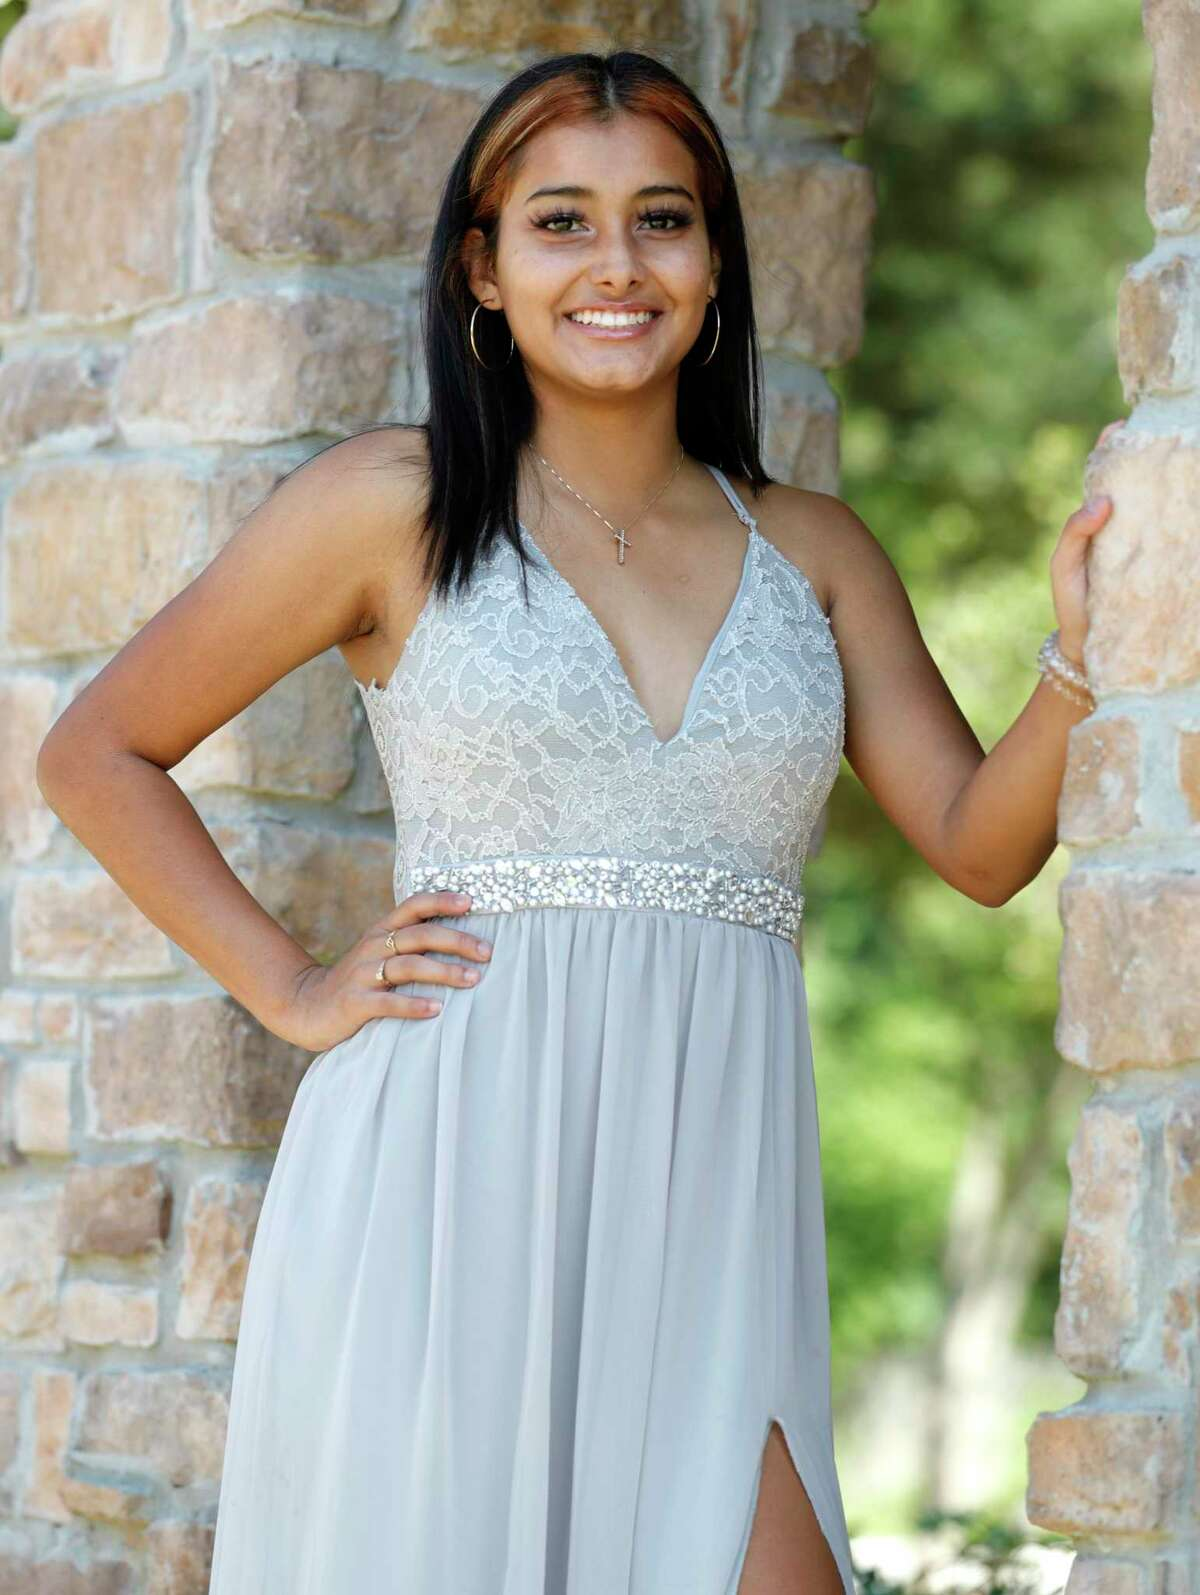 College Park senior Mariana Cortes poses for a portrait in the dress she would have worn to prom, Friday, April 24, 2020, in Spring.